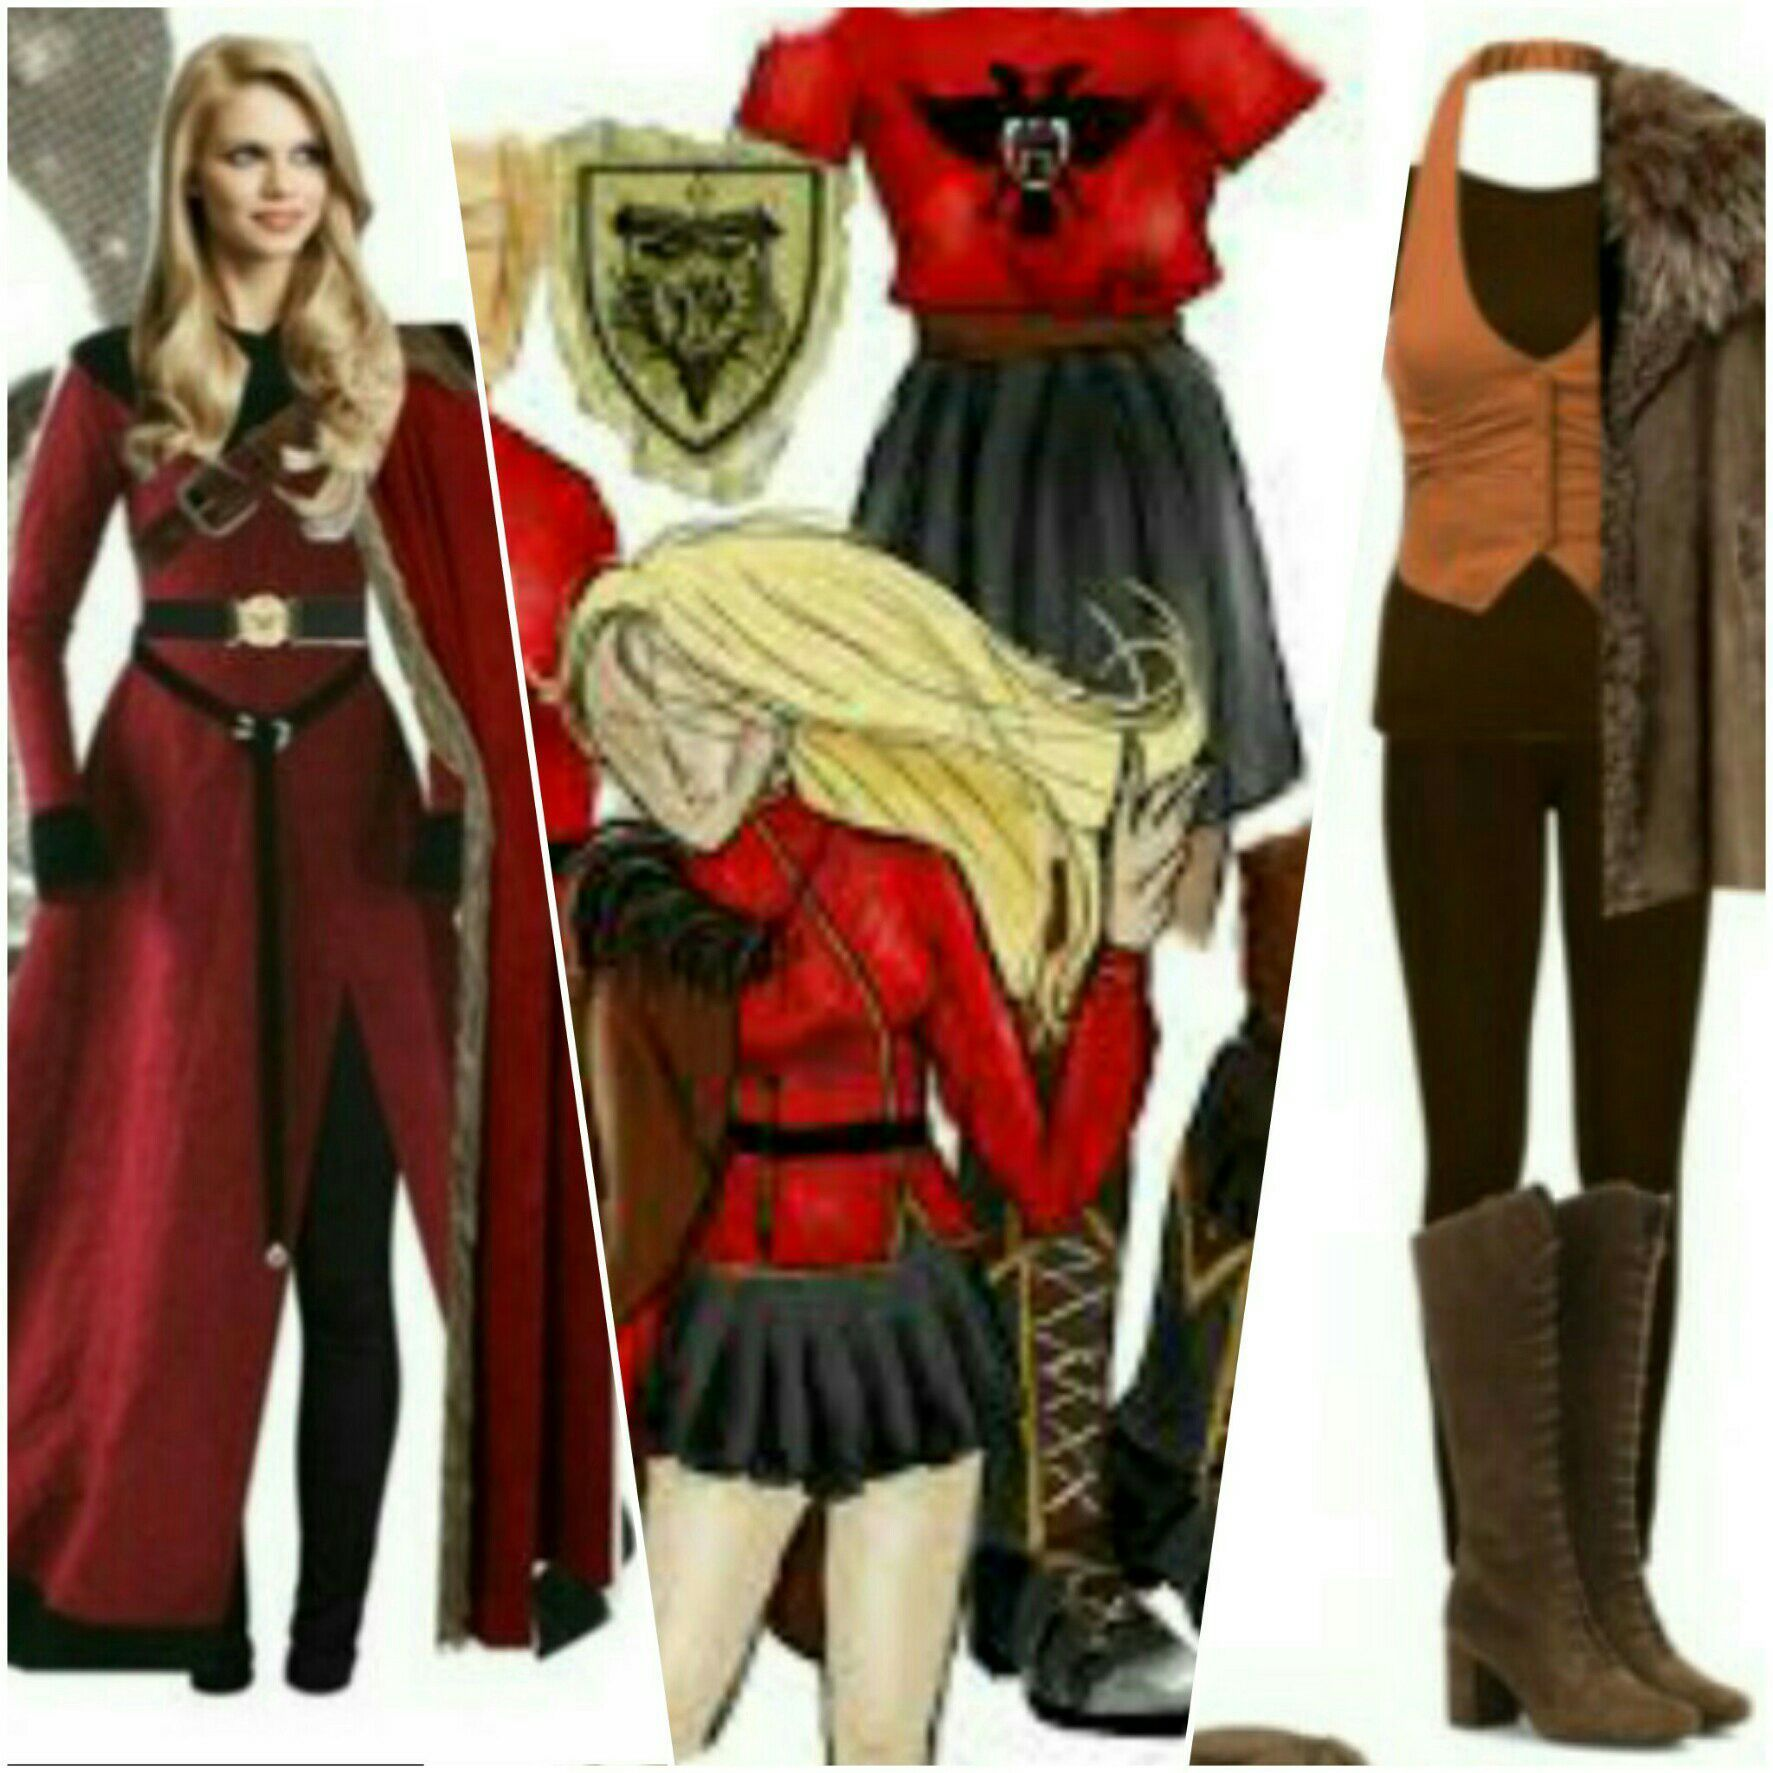 Pin On Awesome Bedrooms Durmstrang female uniform by ariacloudrunner on deviantart. pin on awesome bedrooms